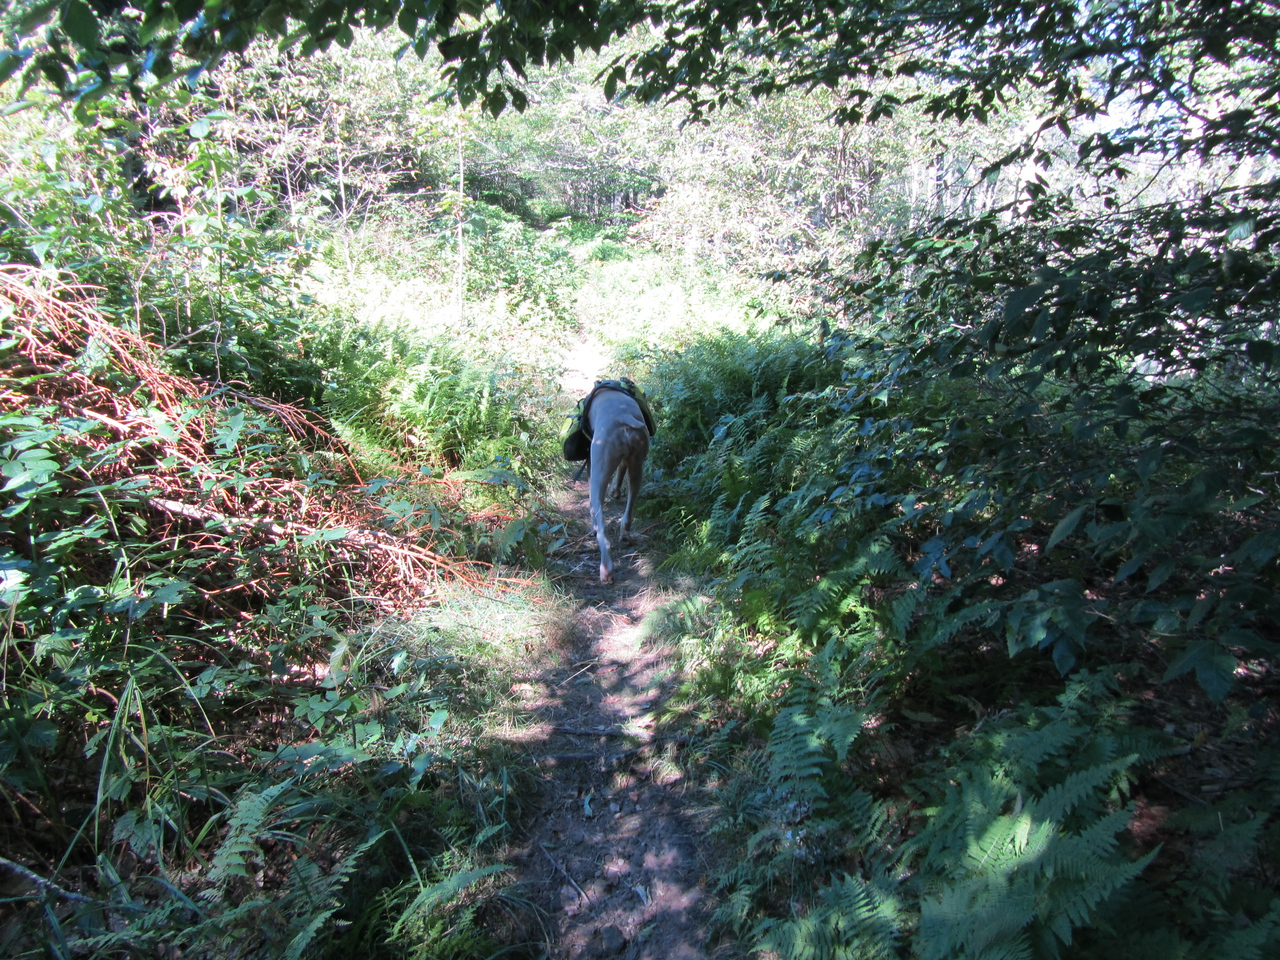 The trail started out flat and easy. This promised to be a nice stroll thought the woods.